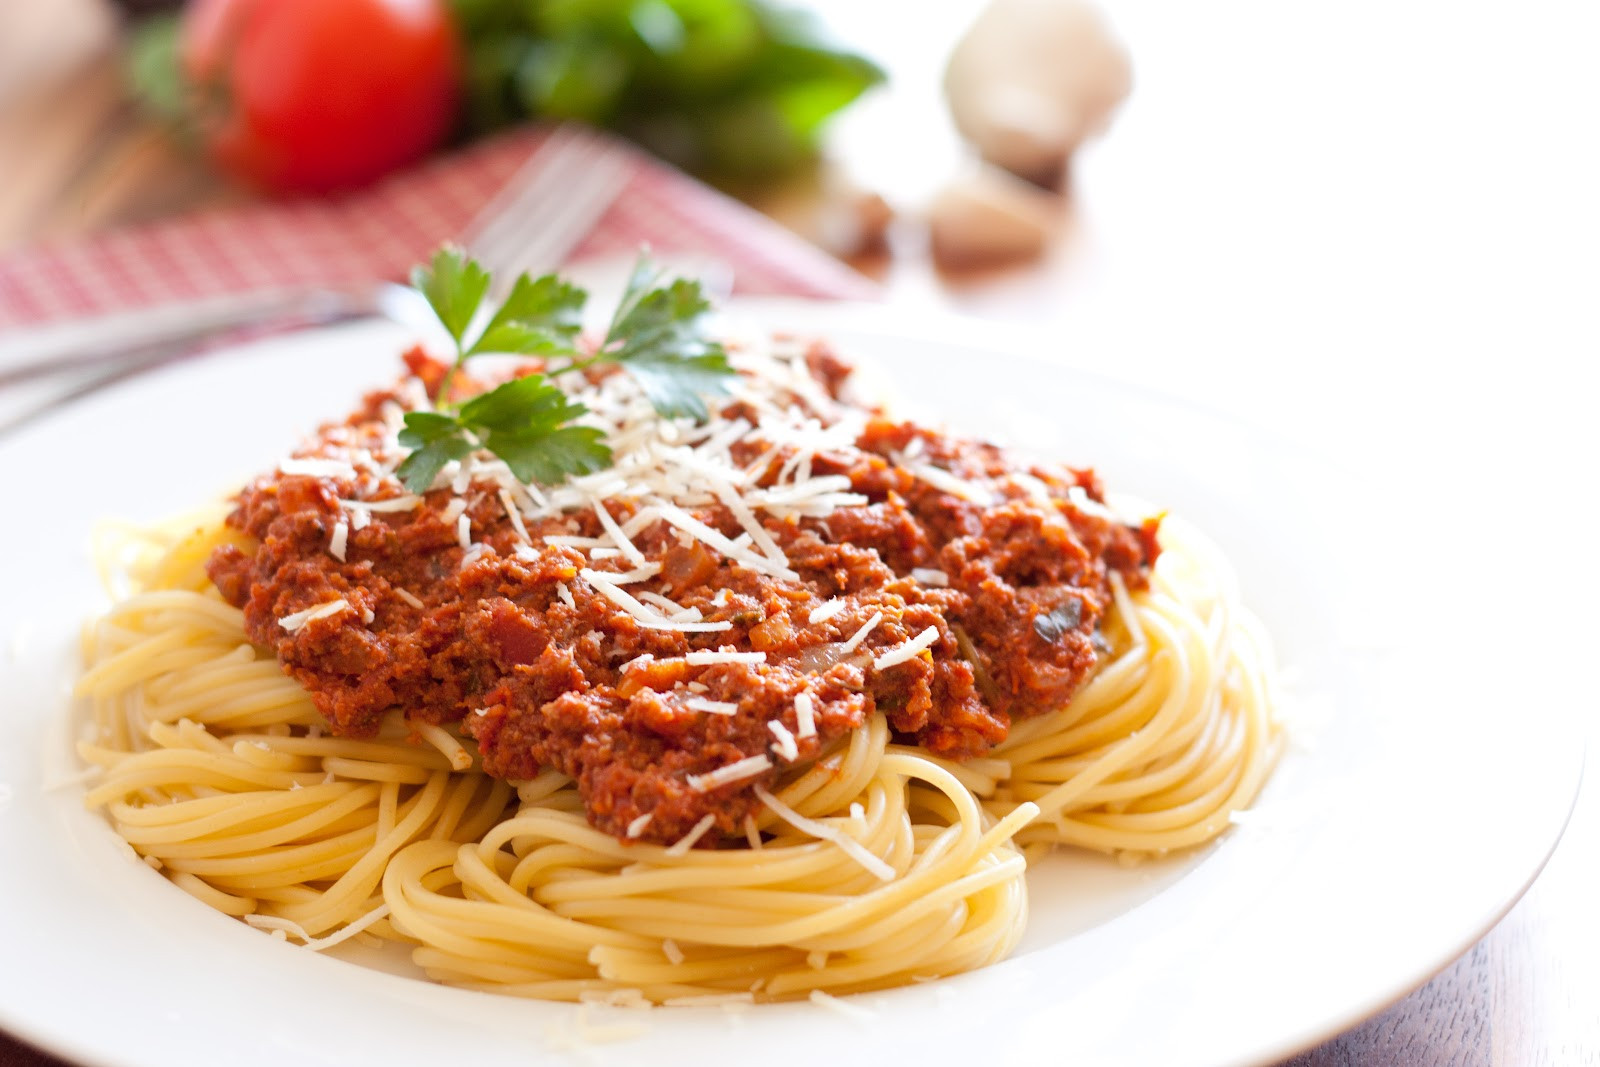 Meat Sauce For Spaghetti  Calories in Spaghetti with Meat Sauce EnkiVillage